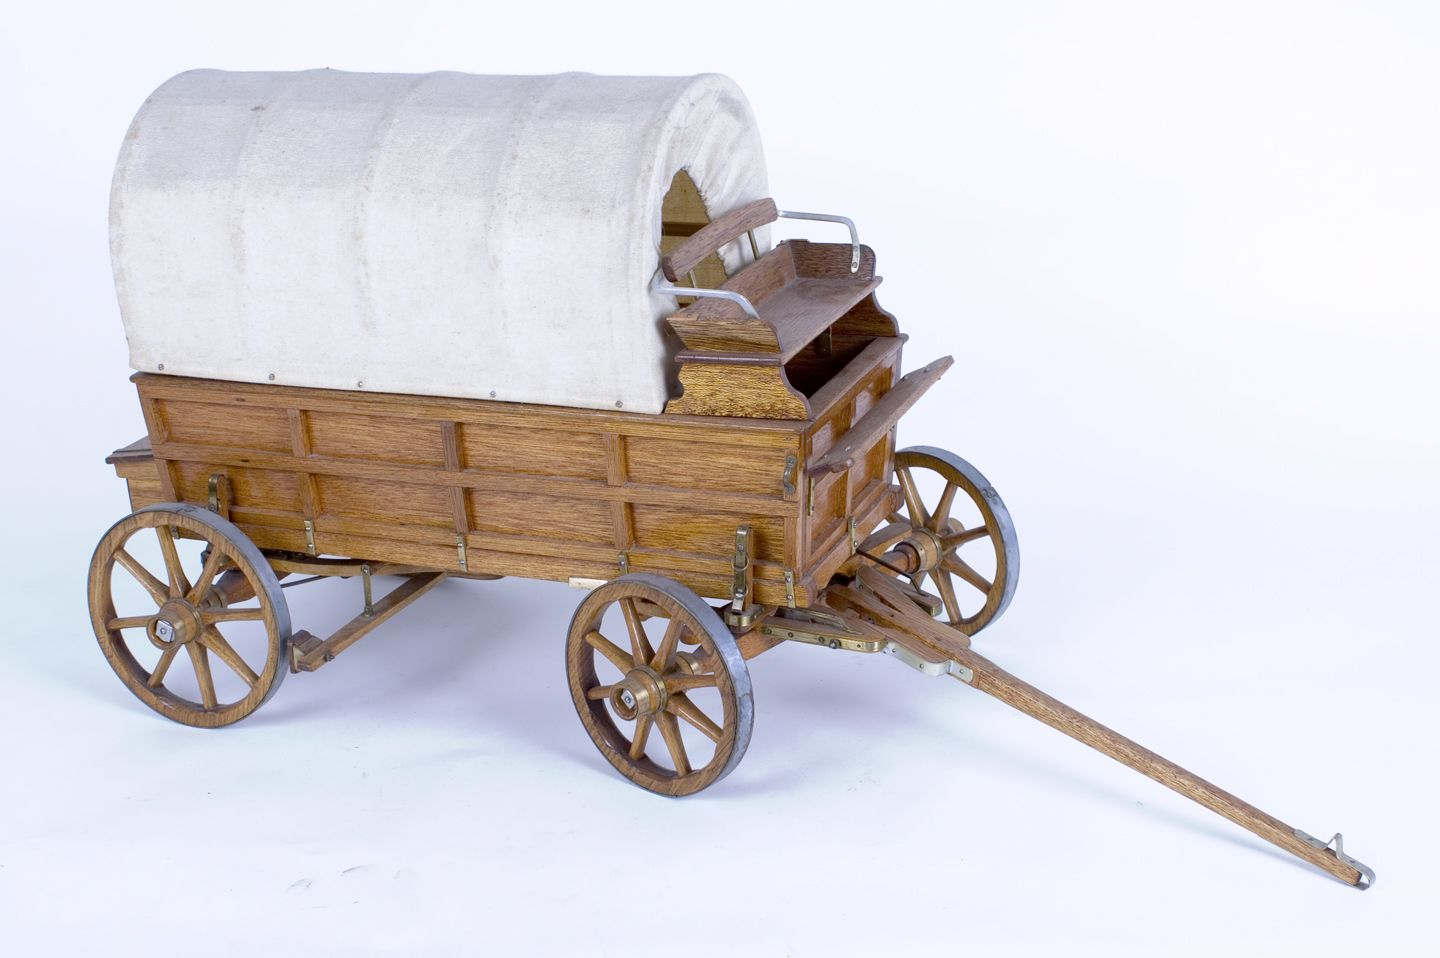 A Covered Wagon Project for a Child to Make thumbnail - made from a ...